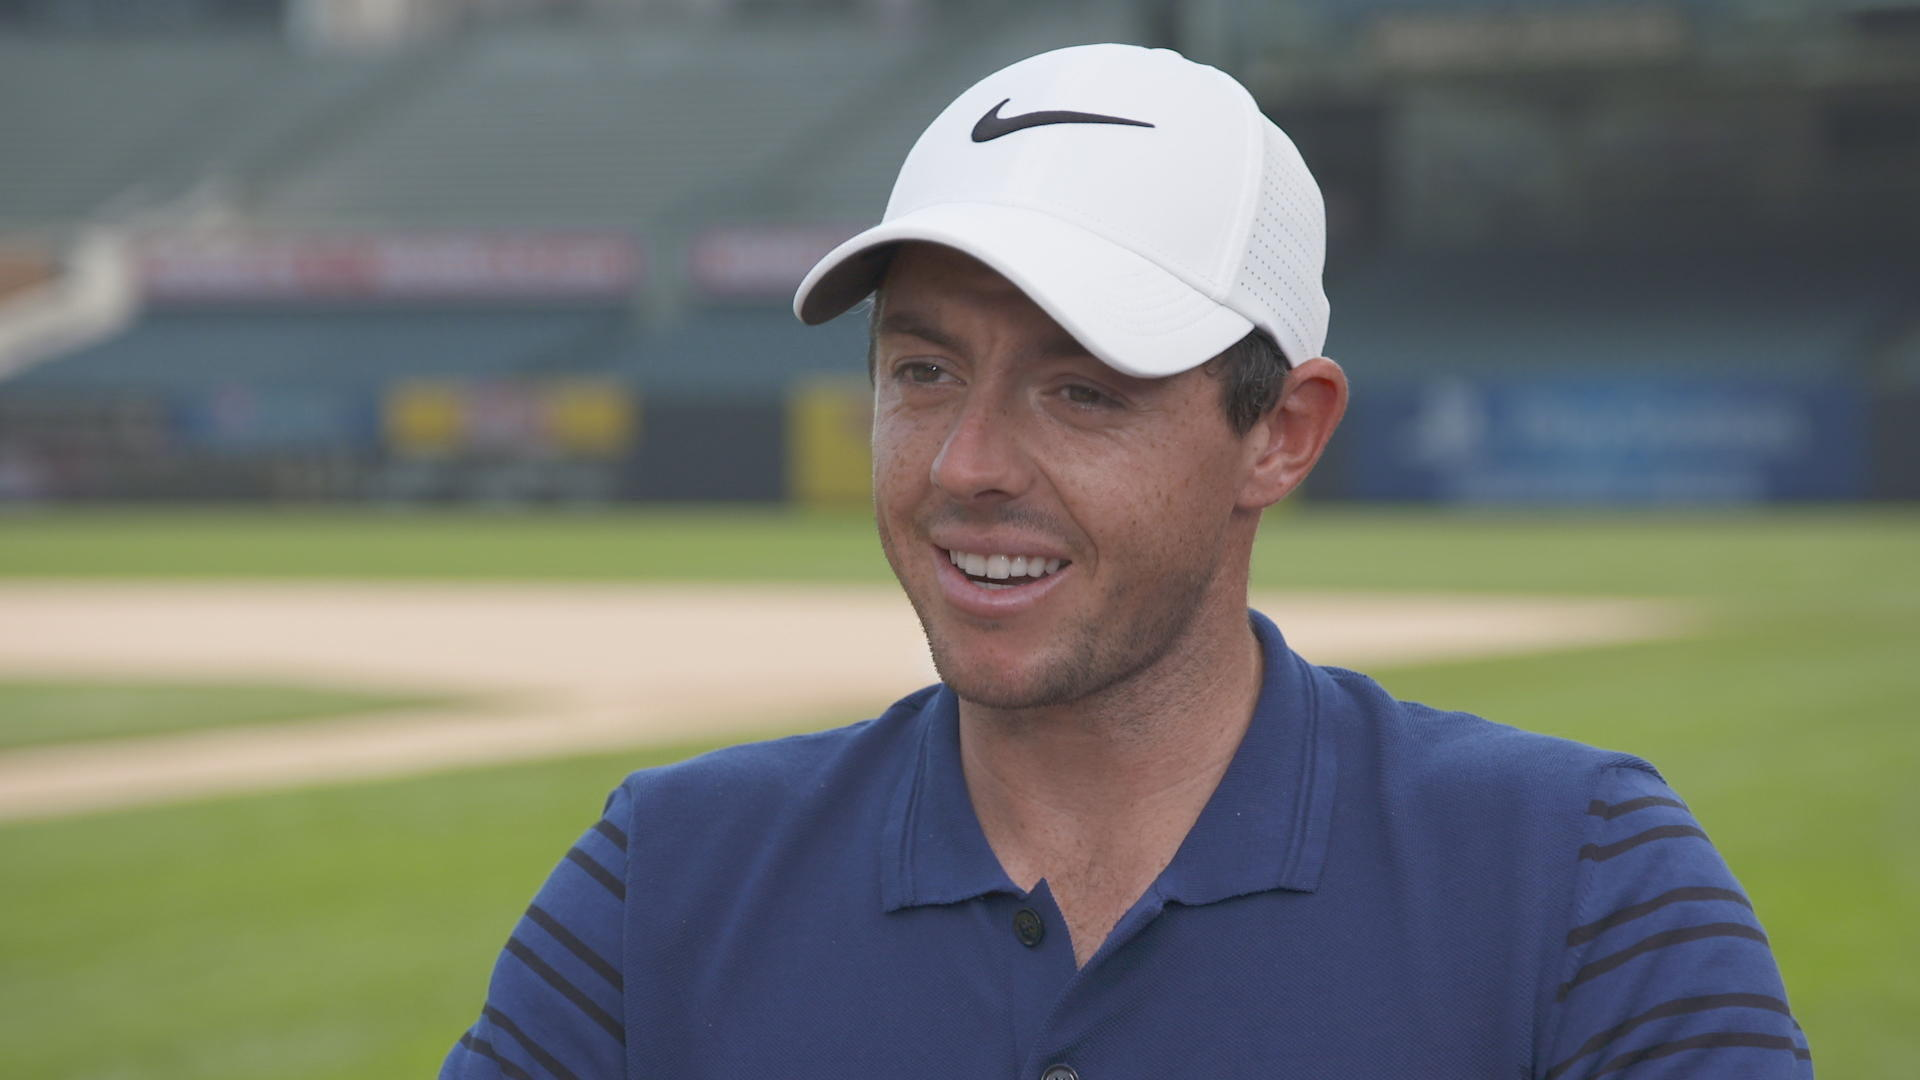 Rory McIlroy talks charity, golfing with Trump and friendship with Tiger Woods